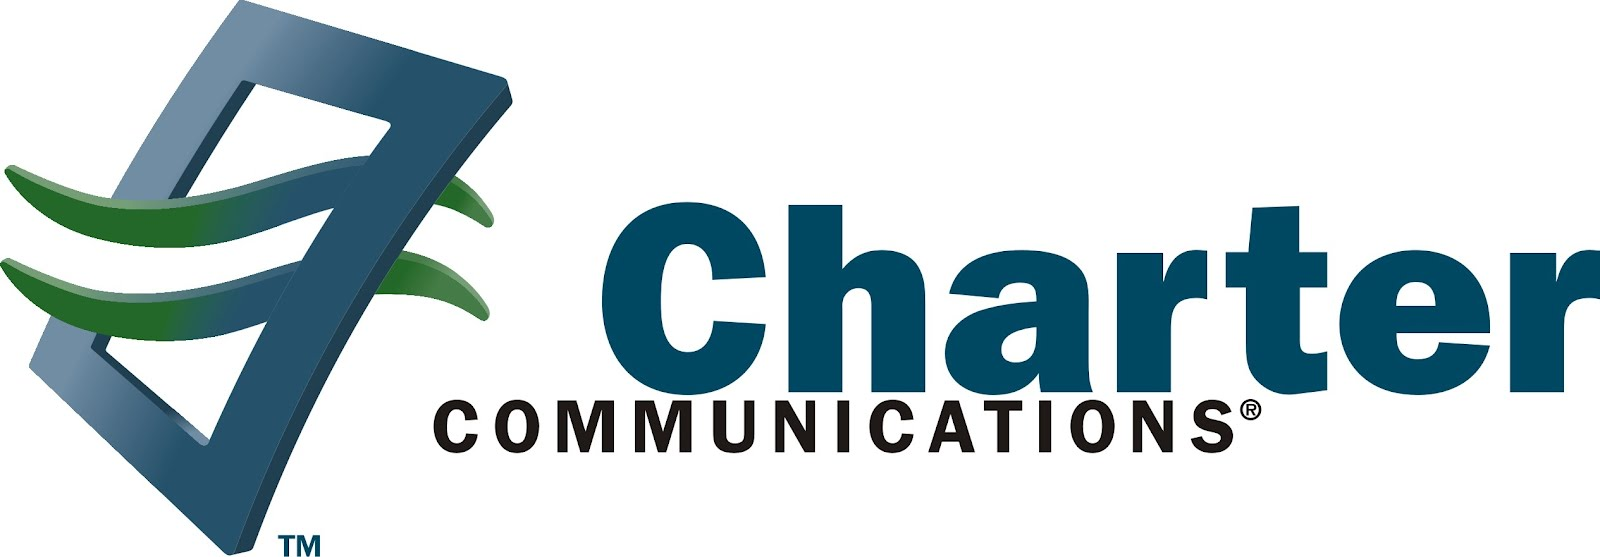 Cable/FCC synergy — FCC tries to help cable companies avoid state consumer protection rules The FCC wants to block Minnesota from regulating Charter's VoIP phone service.